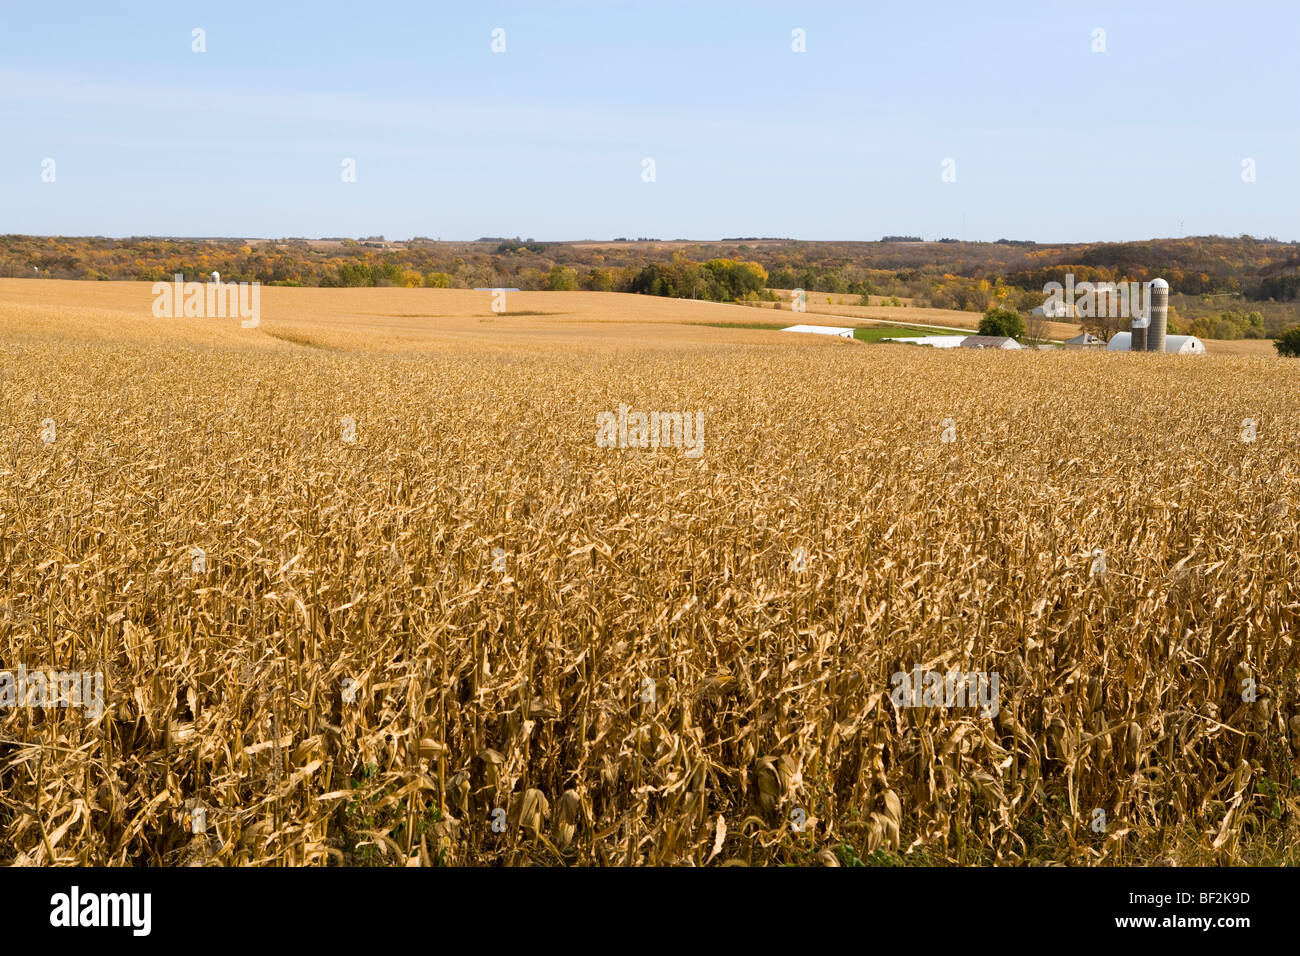 Large field of mature, harvest ready grain corn in Autumn with a farmstead in the background / near Northland, Minnesota, - Stock Image